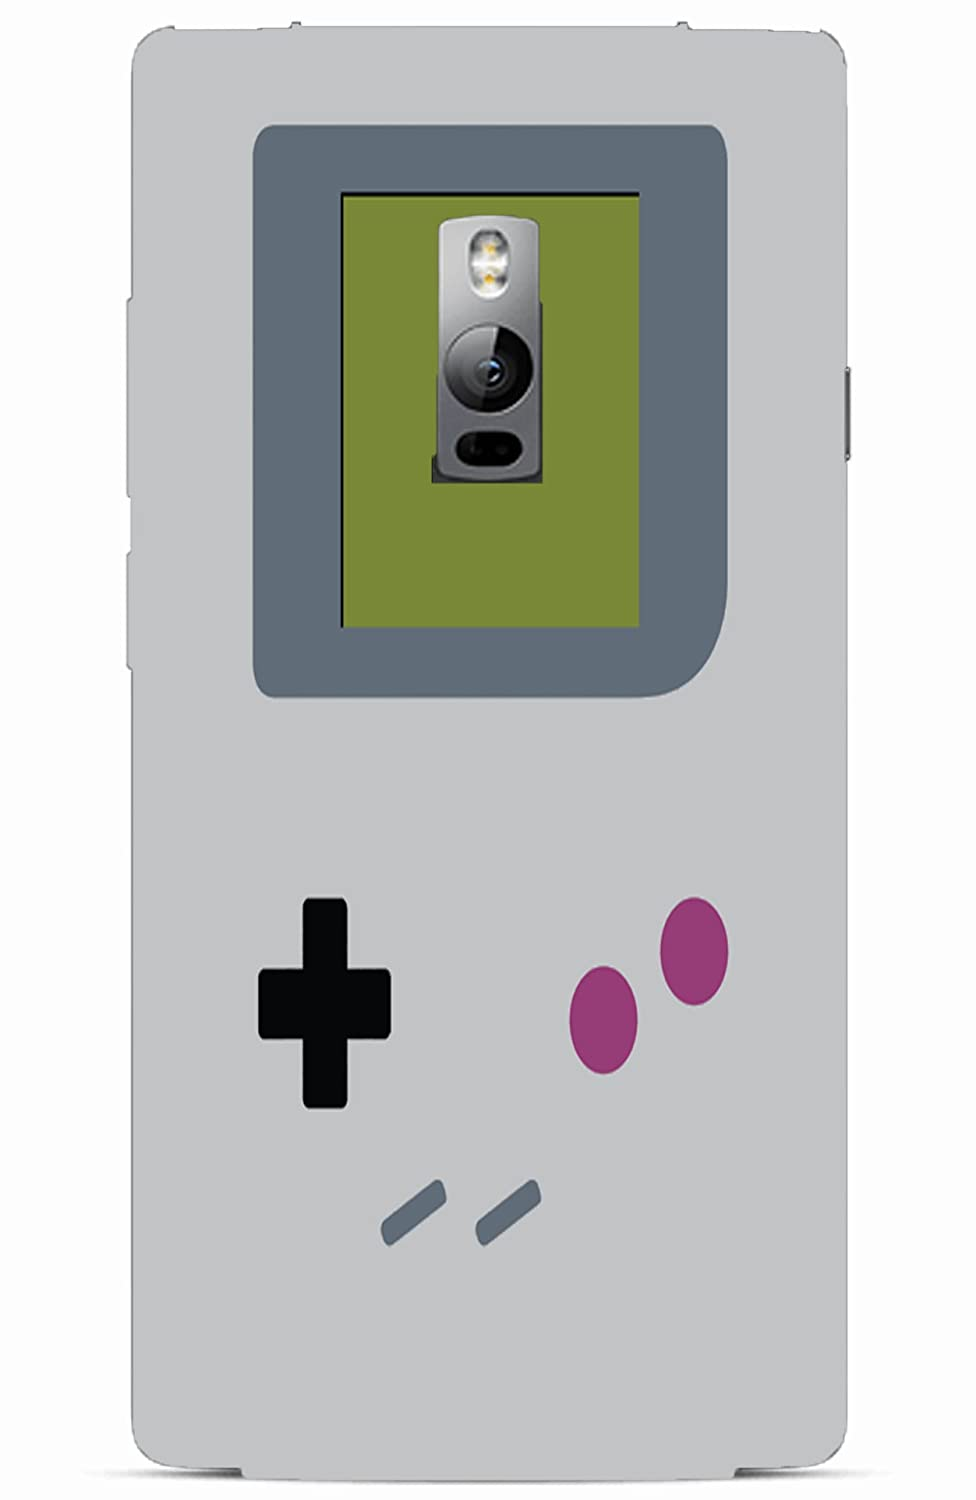 Gameboy 3D printed cover for OnePlus 2